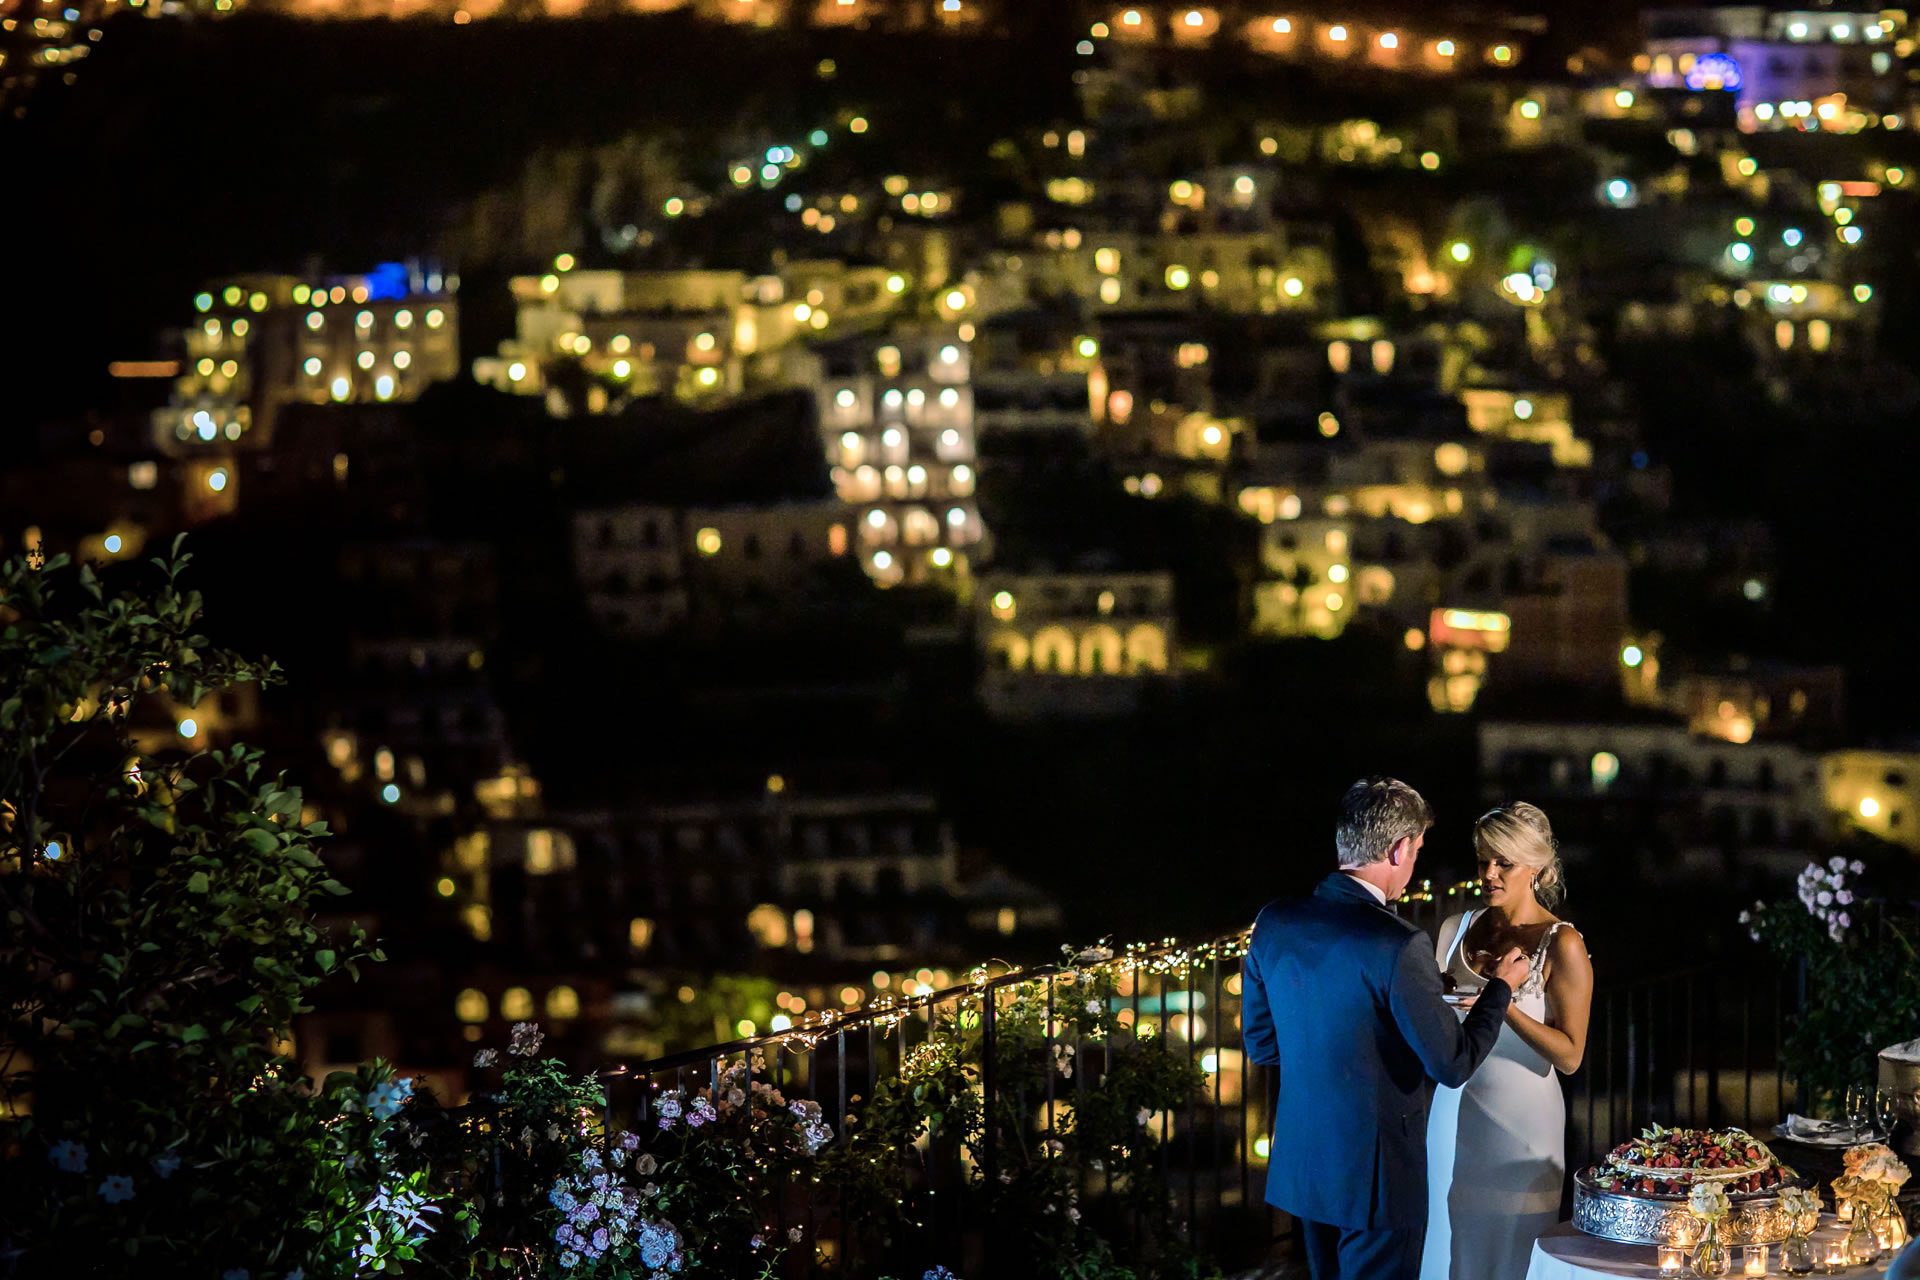 Night Lights - 63 :: Wedding in Positano. Sea and love :: Luxury wedding photography - 62 :: Night Lights - 63